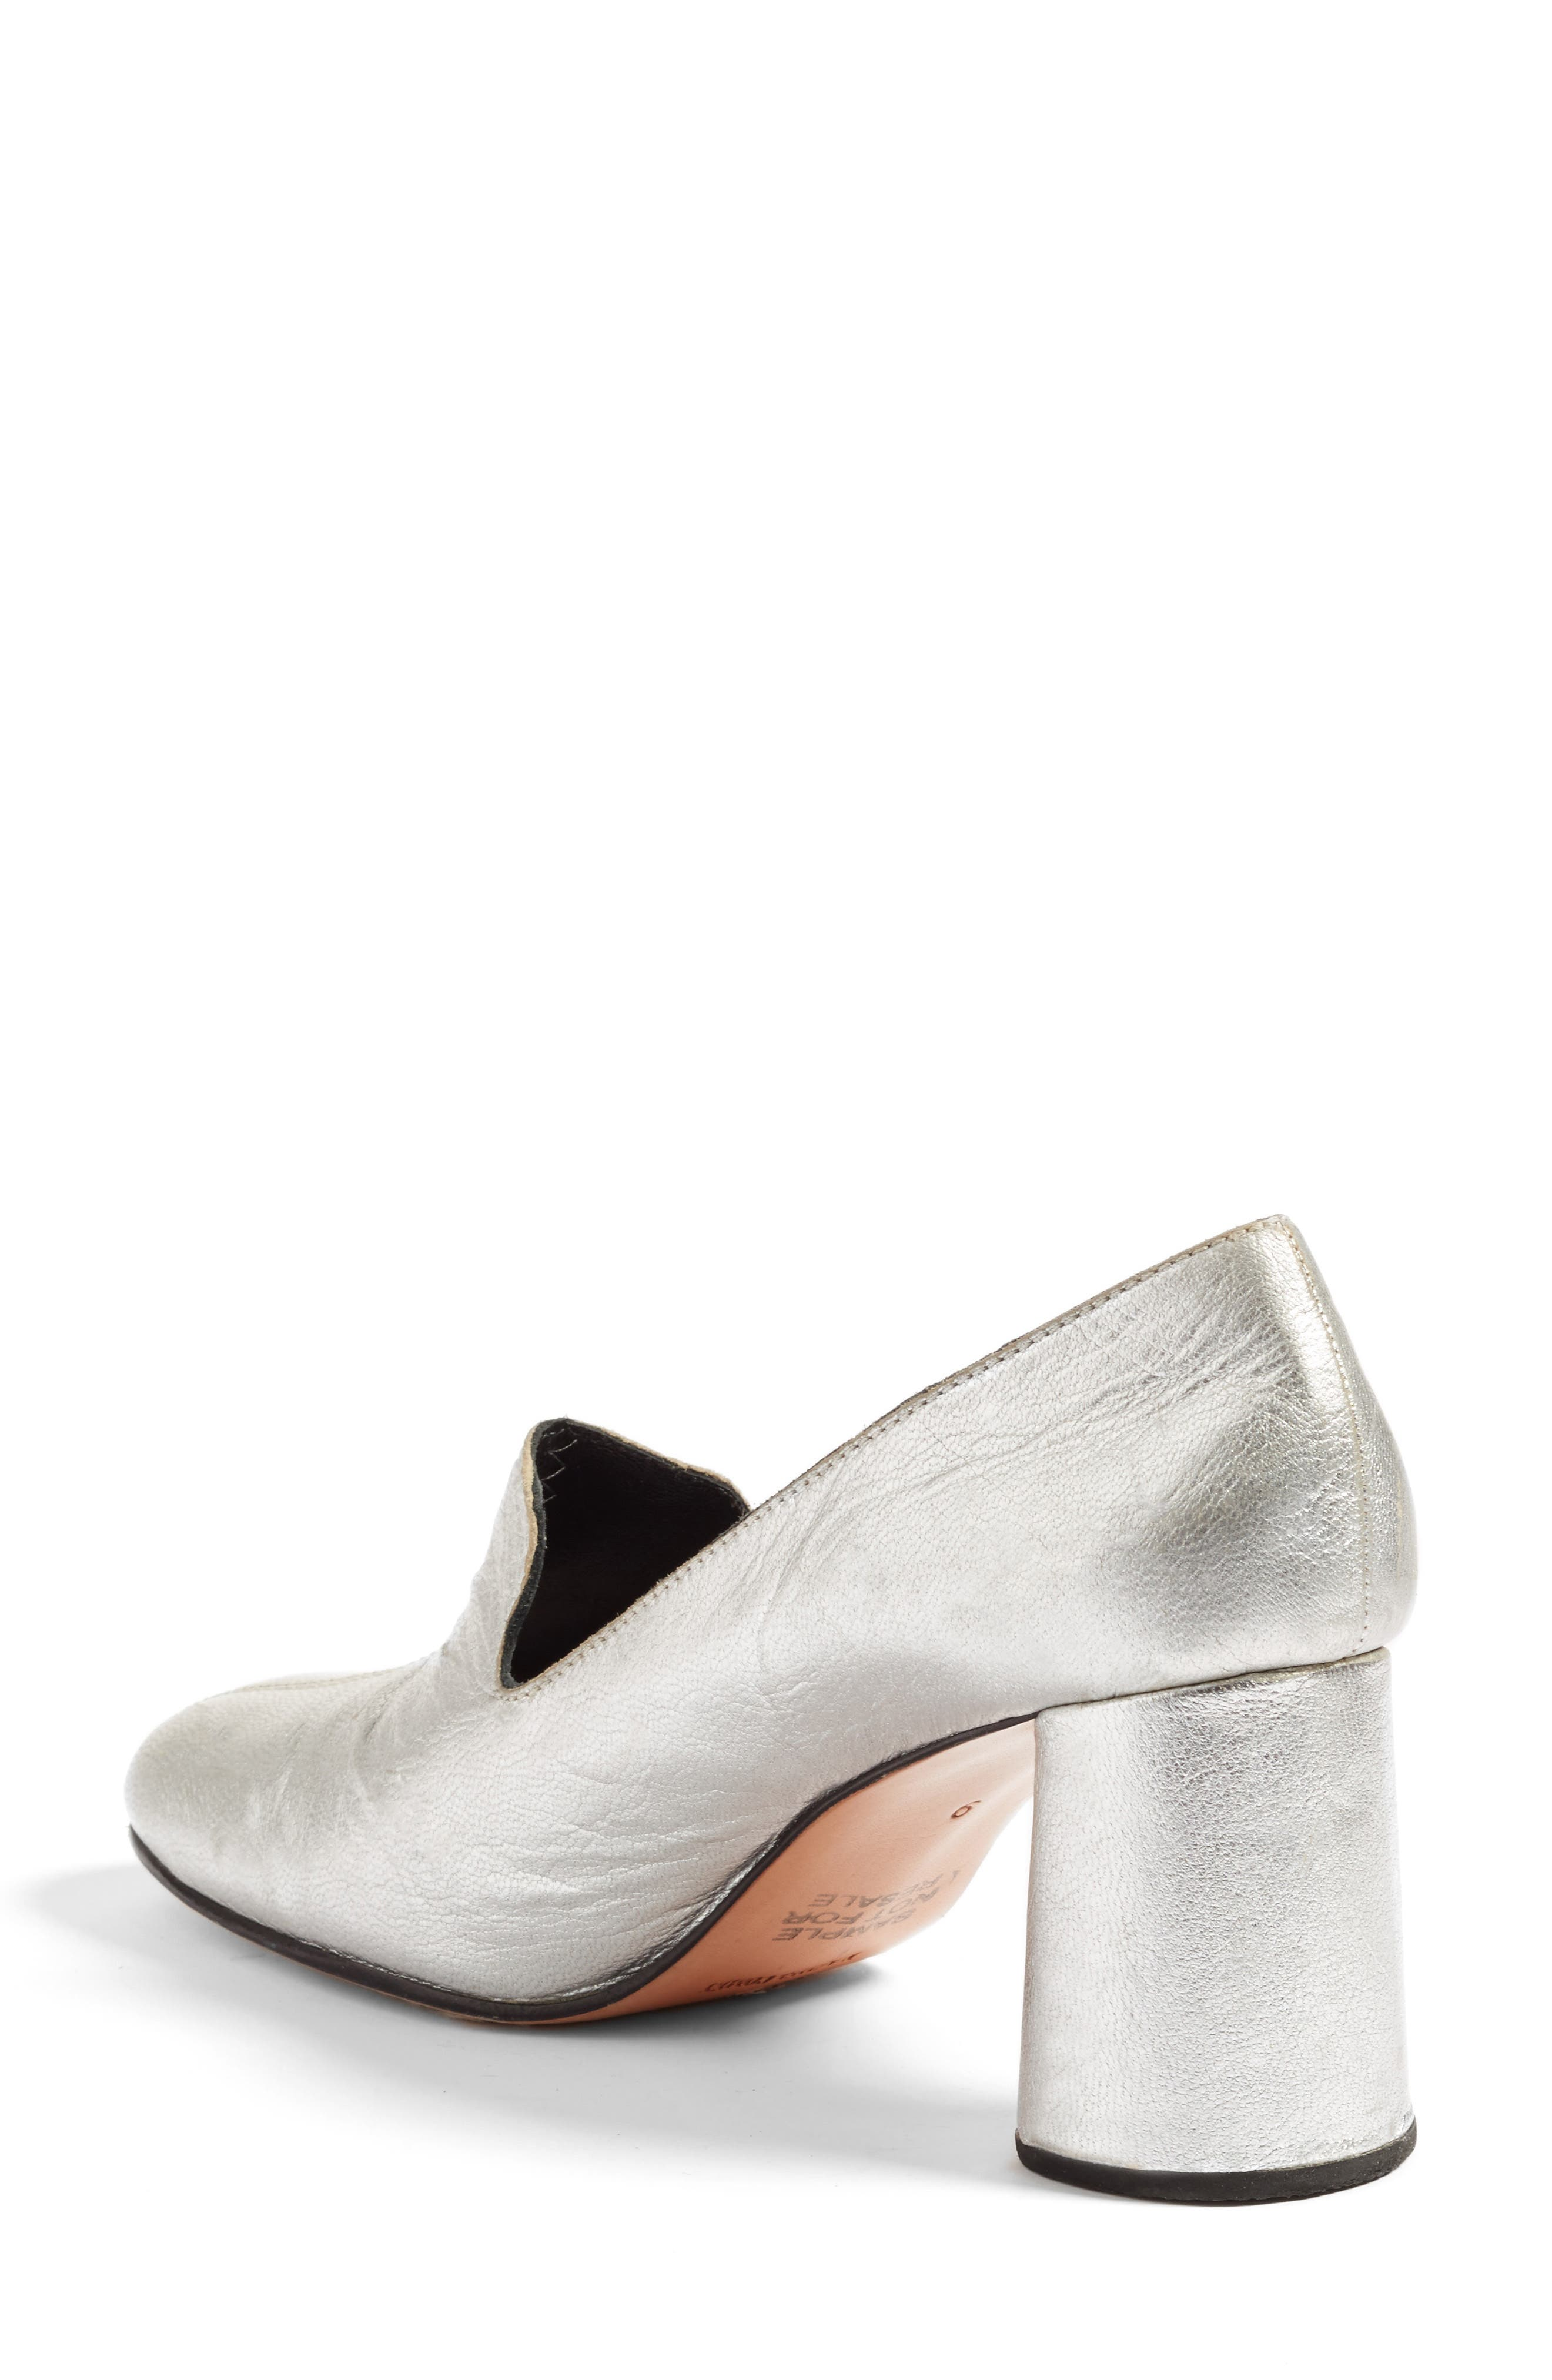 'May' Retro Loafer Pump,                             Alternate thumbnail 2, color,                             040